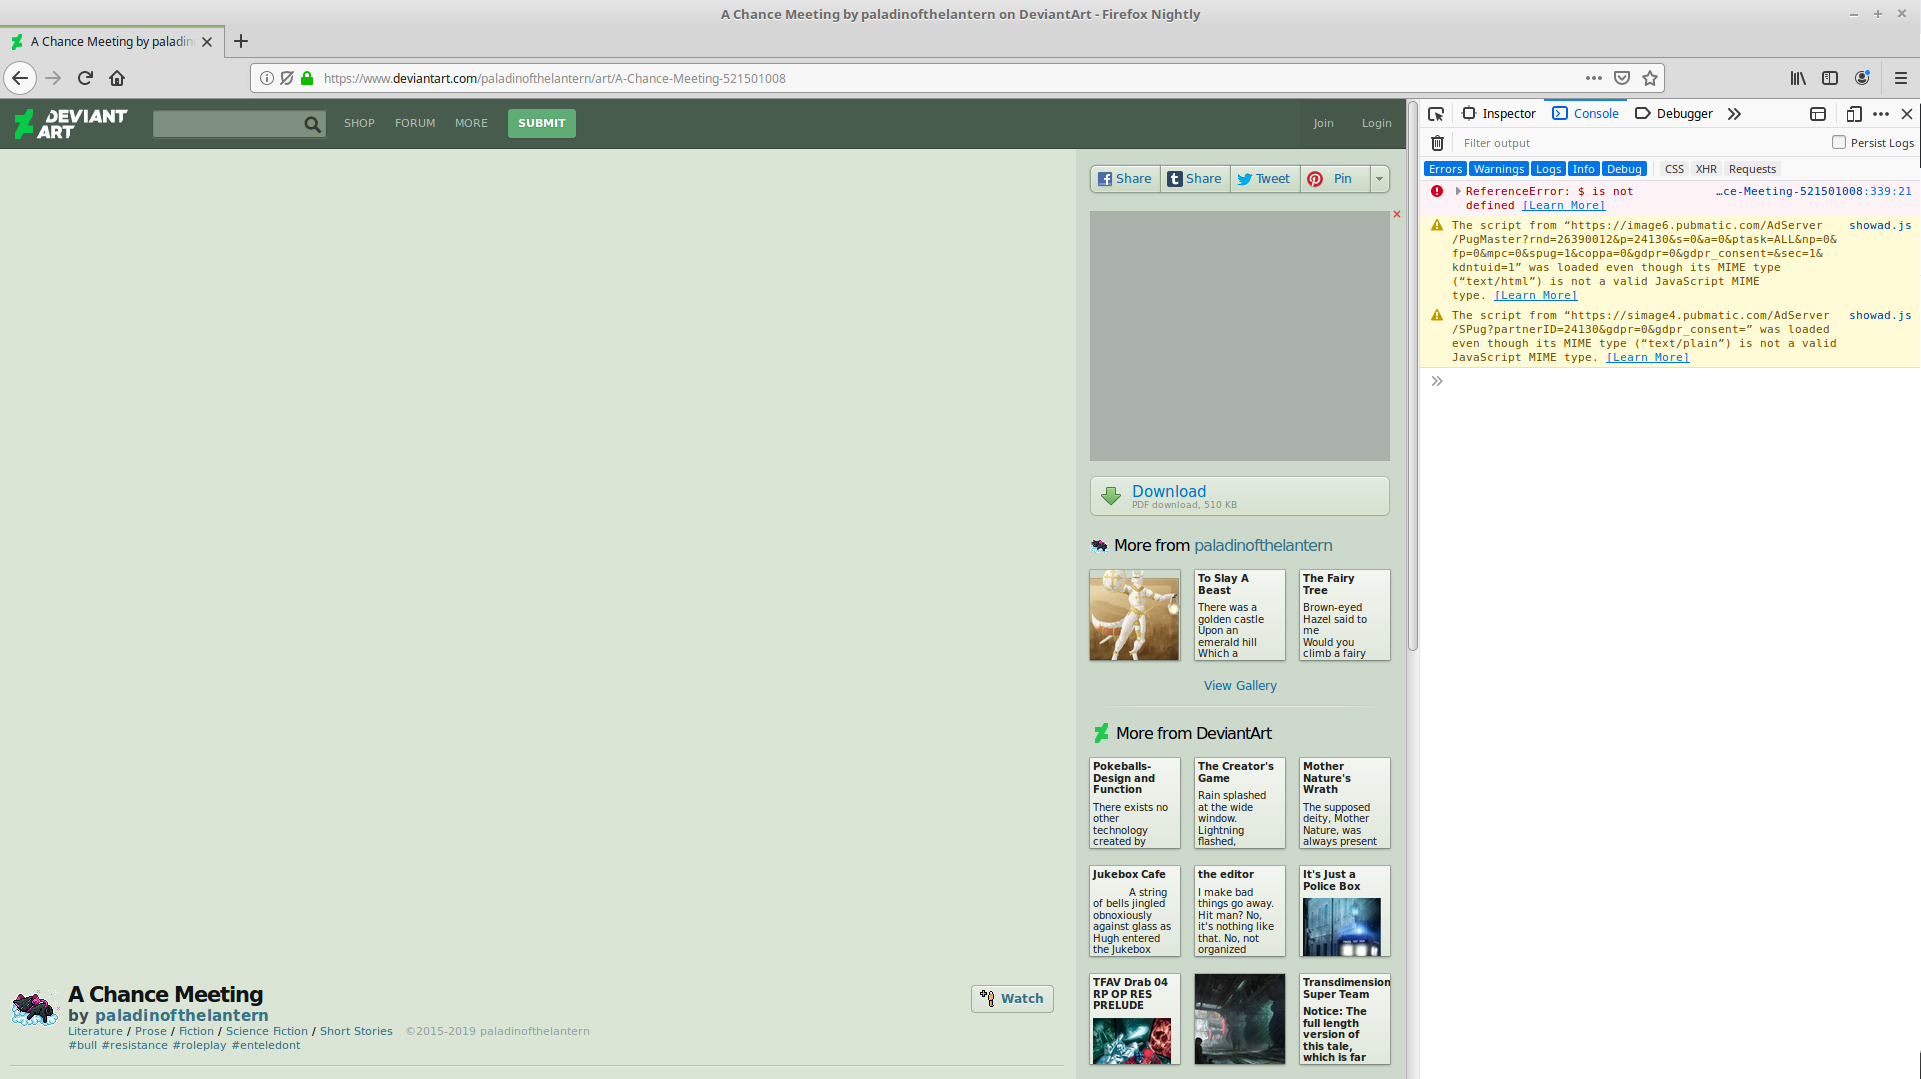 www deviantart com - Embedded PDF does not appear · Issue #29420